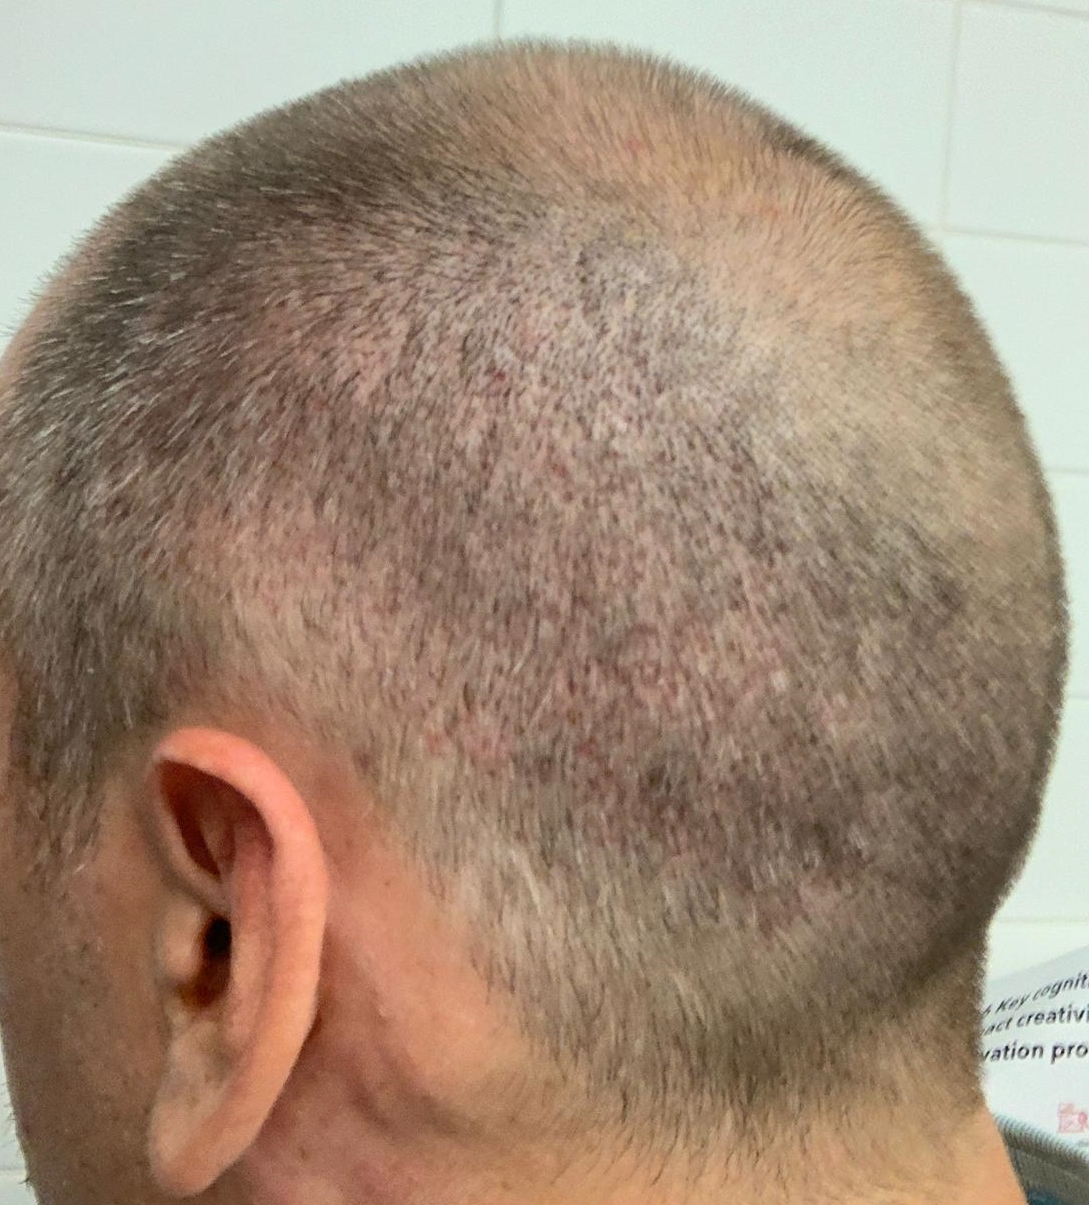 5 Day Post FUE Donor Healing